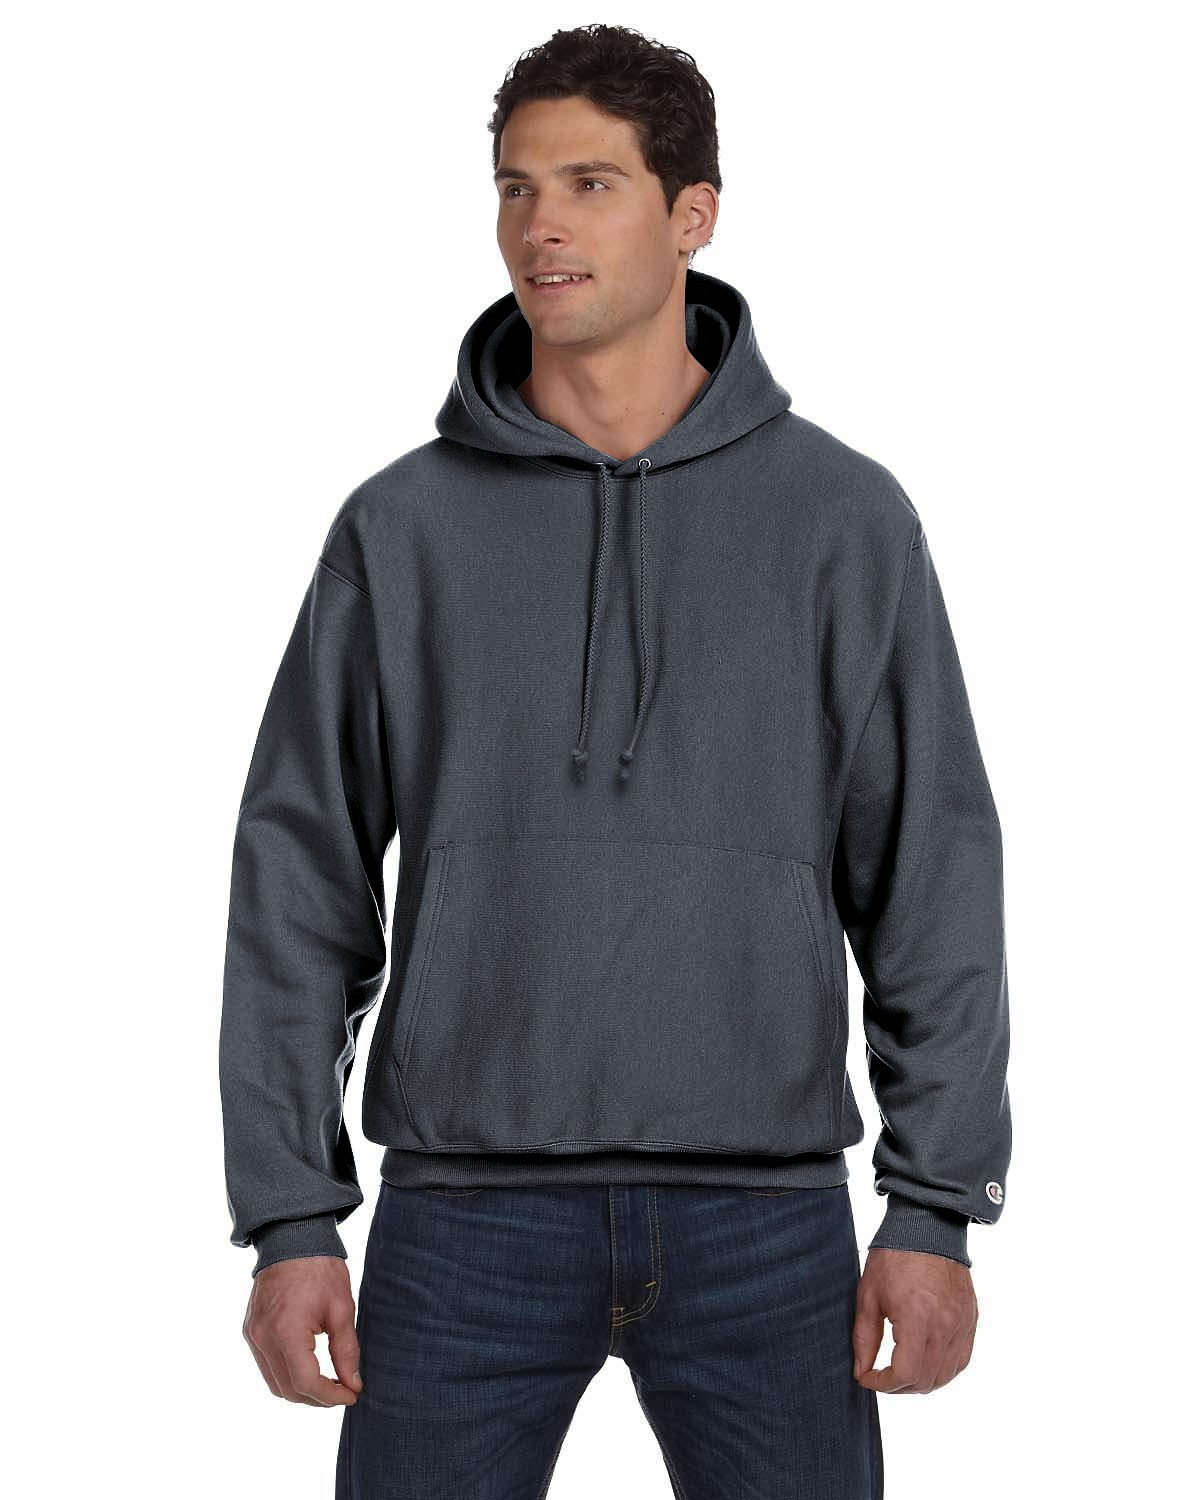 S1051 Champion CHARCOAL HEATHER